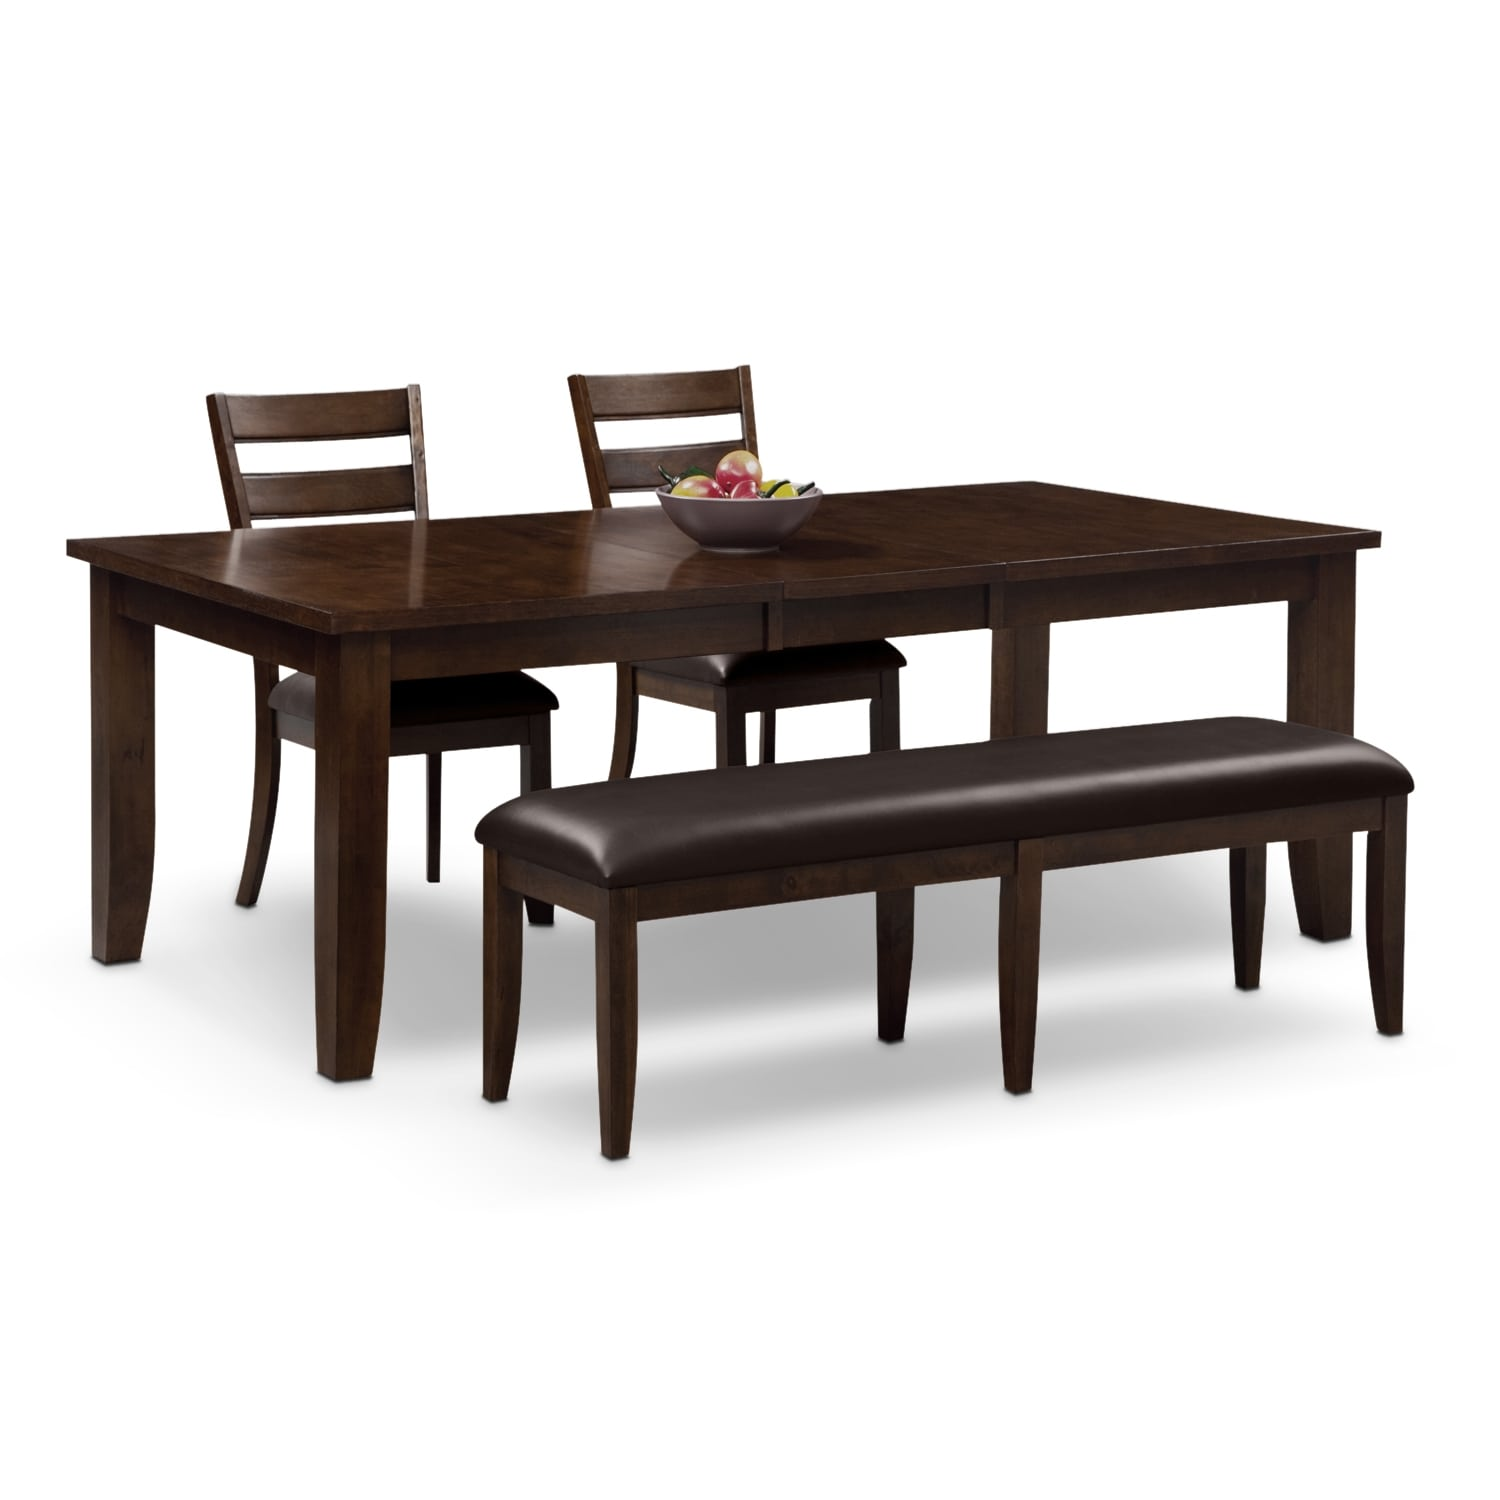 Abaco table 2 chairs and bench brown value city for Dining room table 2